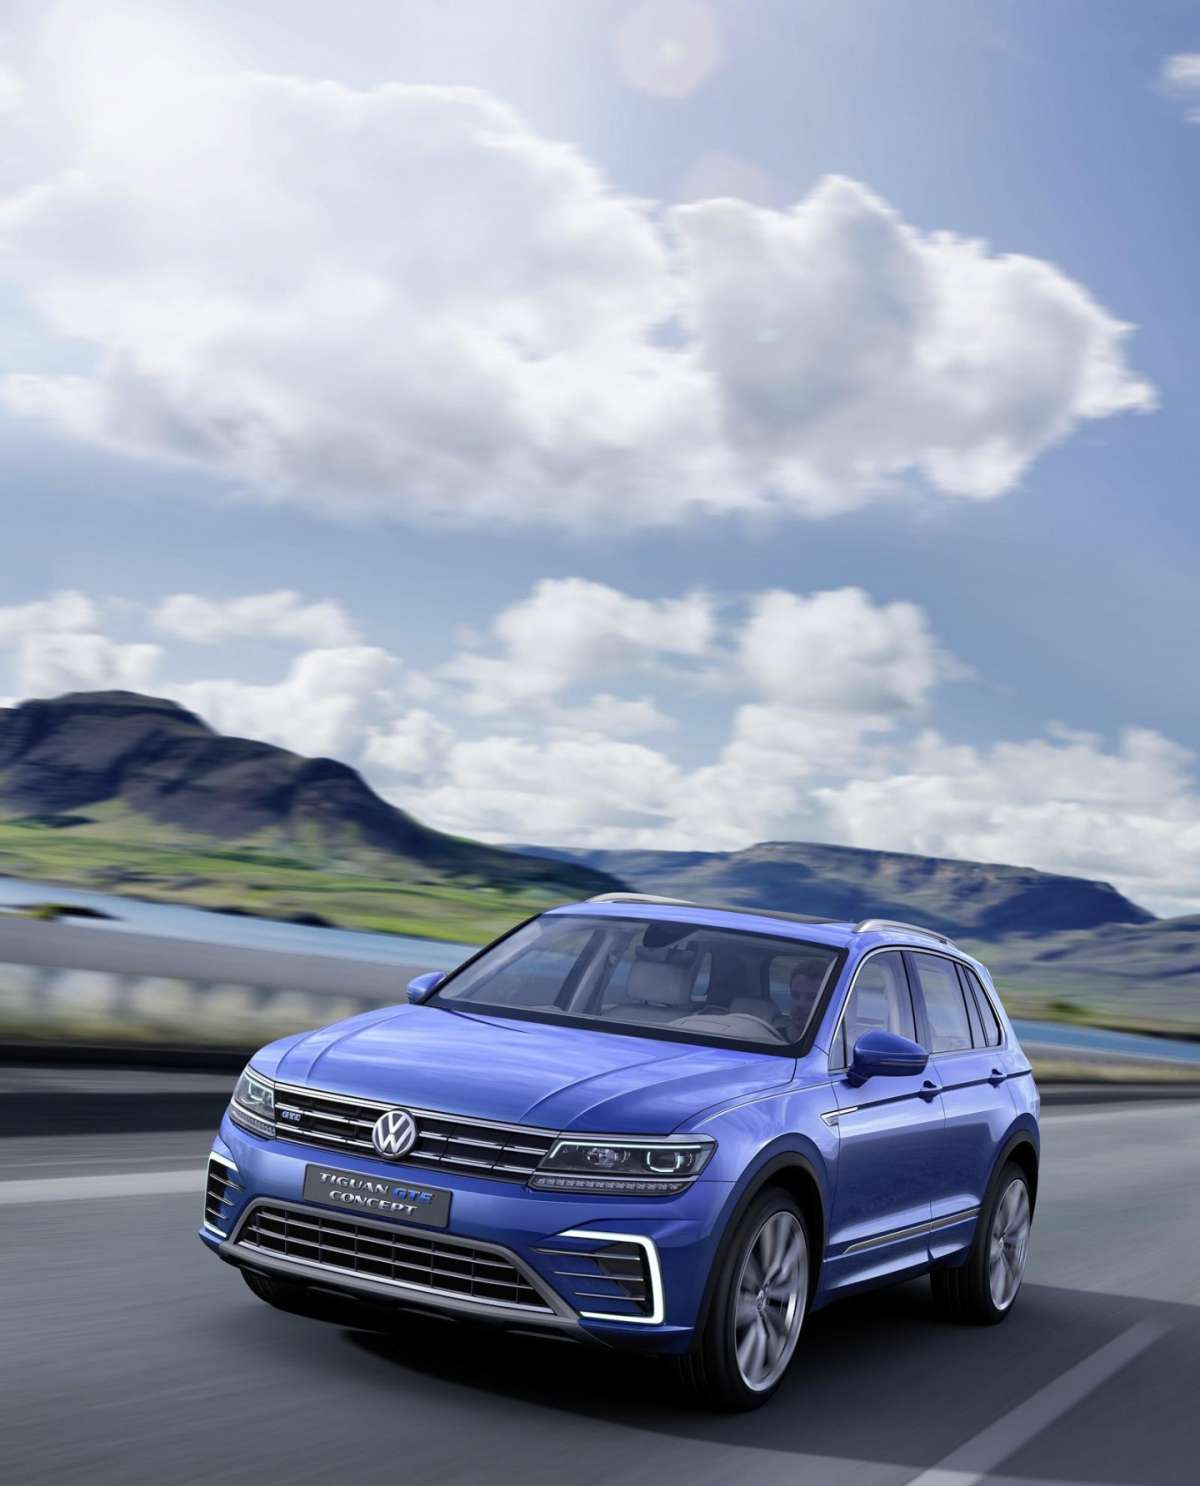 VW Tiguan 2016 hybrid plug-in